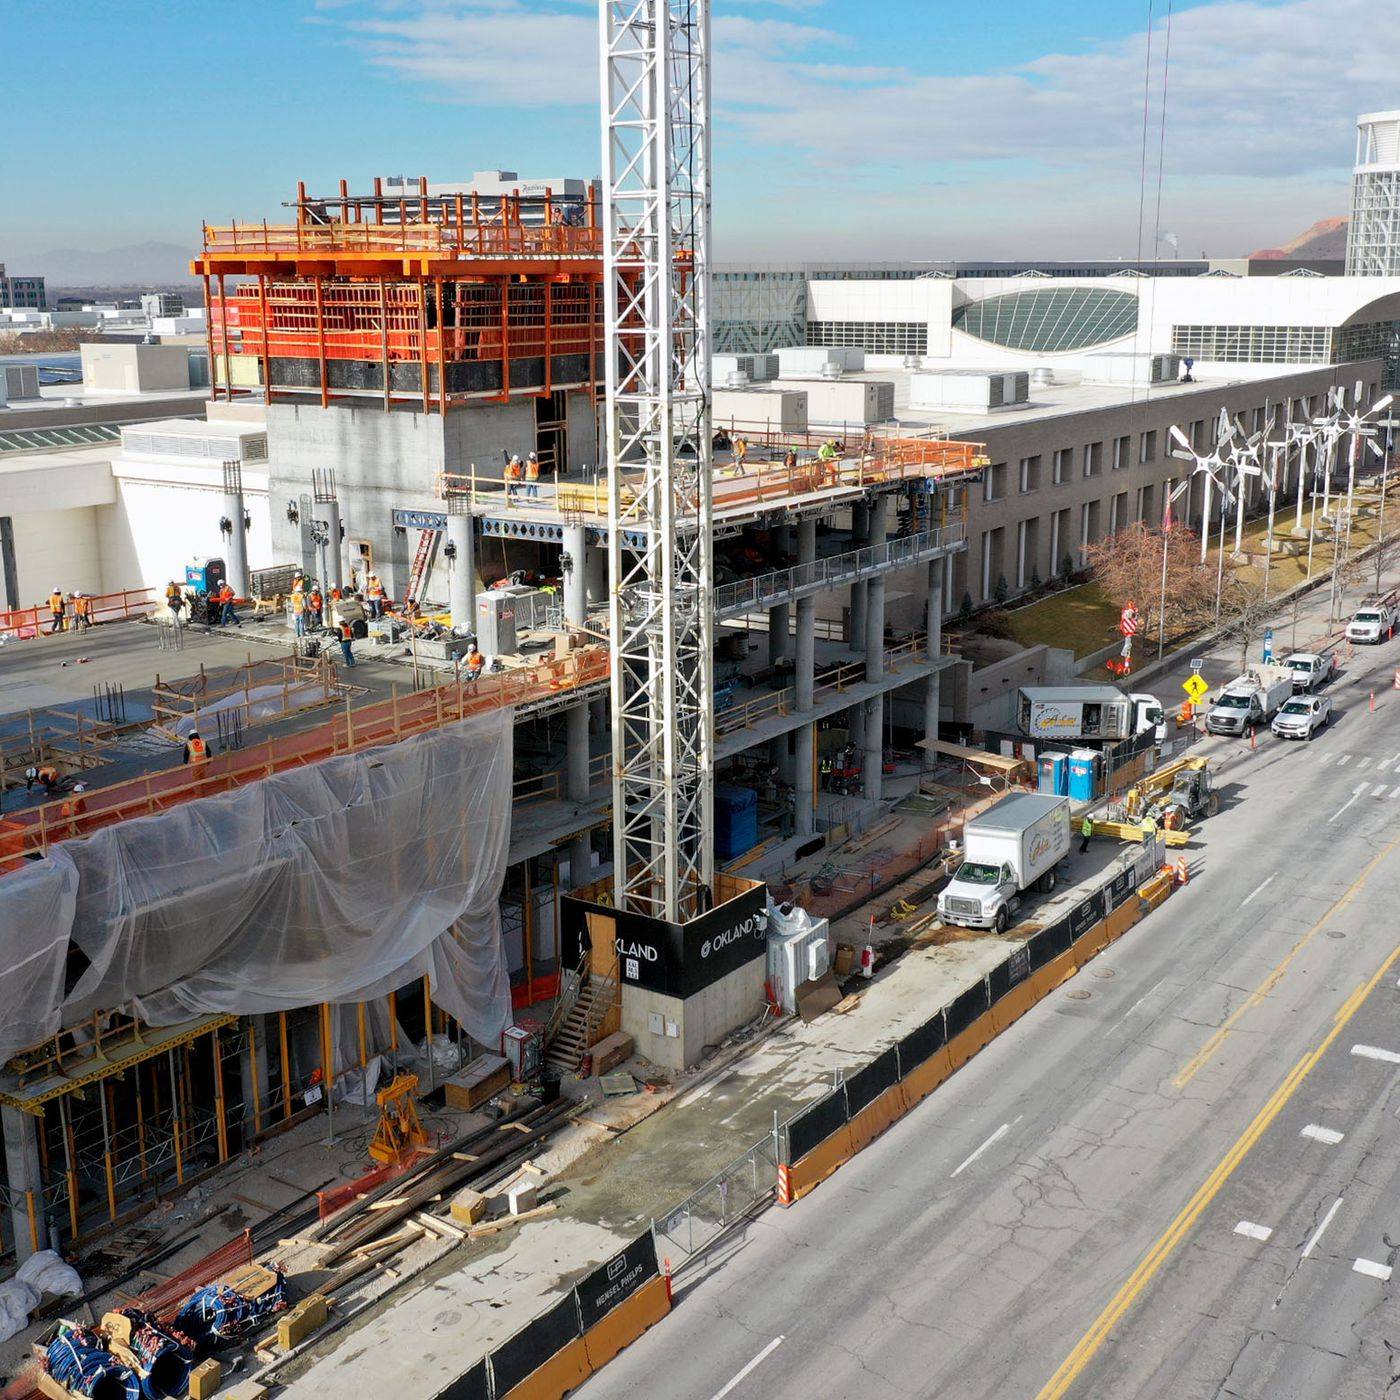 deseret.com - Jasen Lee - Convention hotel construction on schedule and already reaping benefits